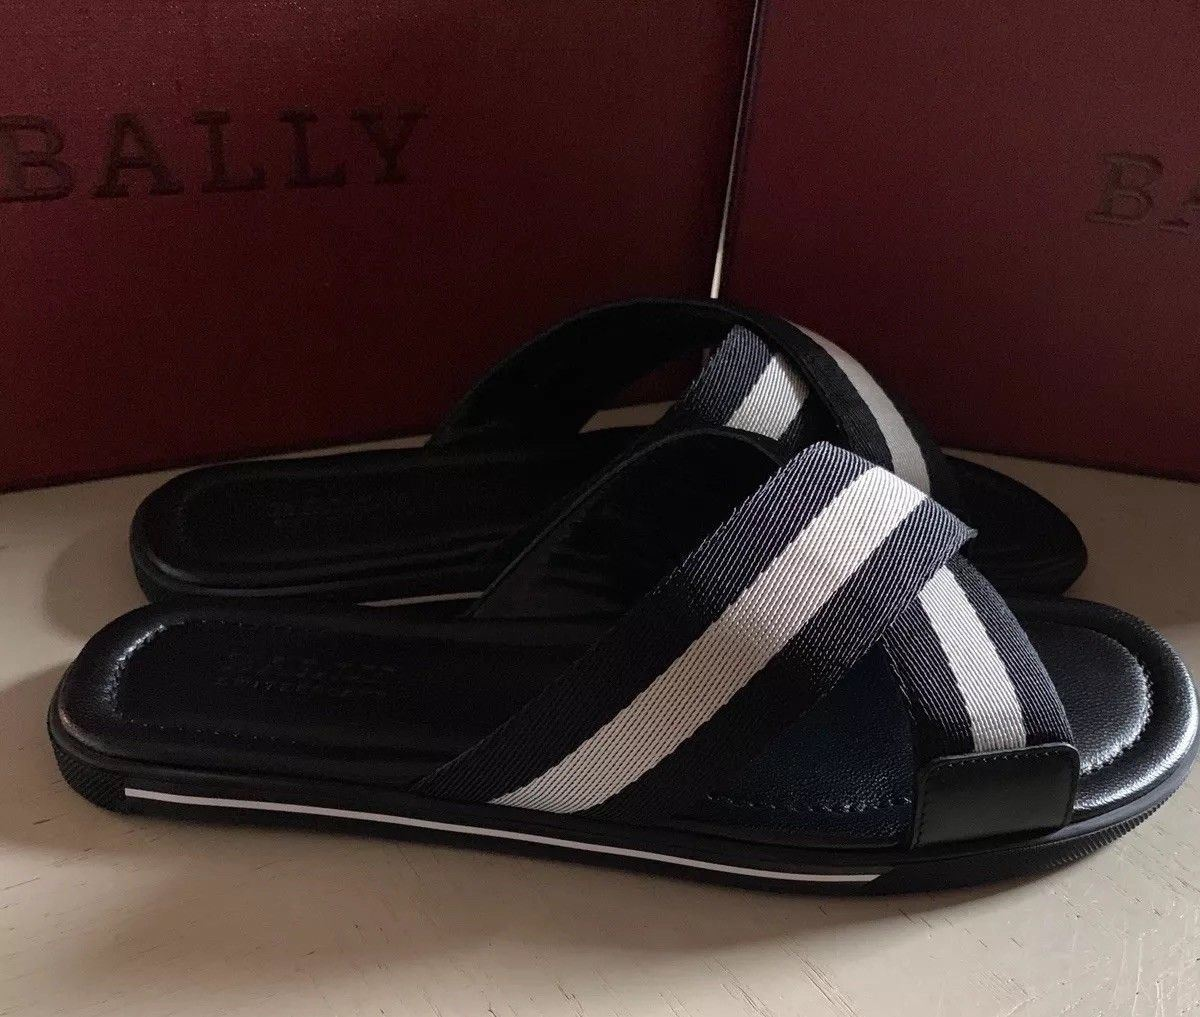 New $295 Bally Men Bonks Leather Canvas  Sandal Shoes Black 9 US Italy